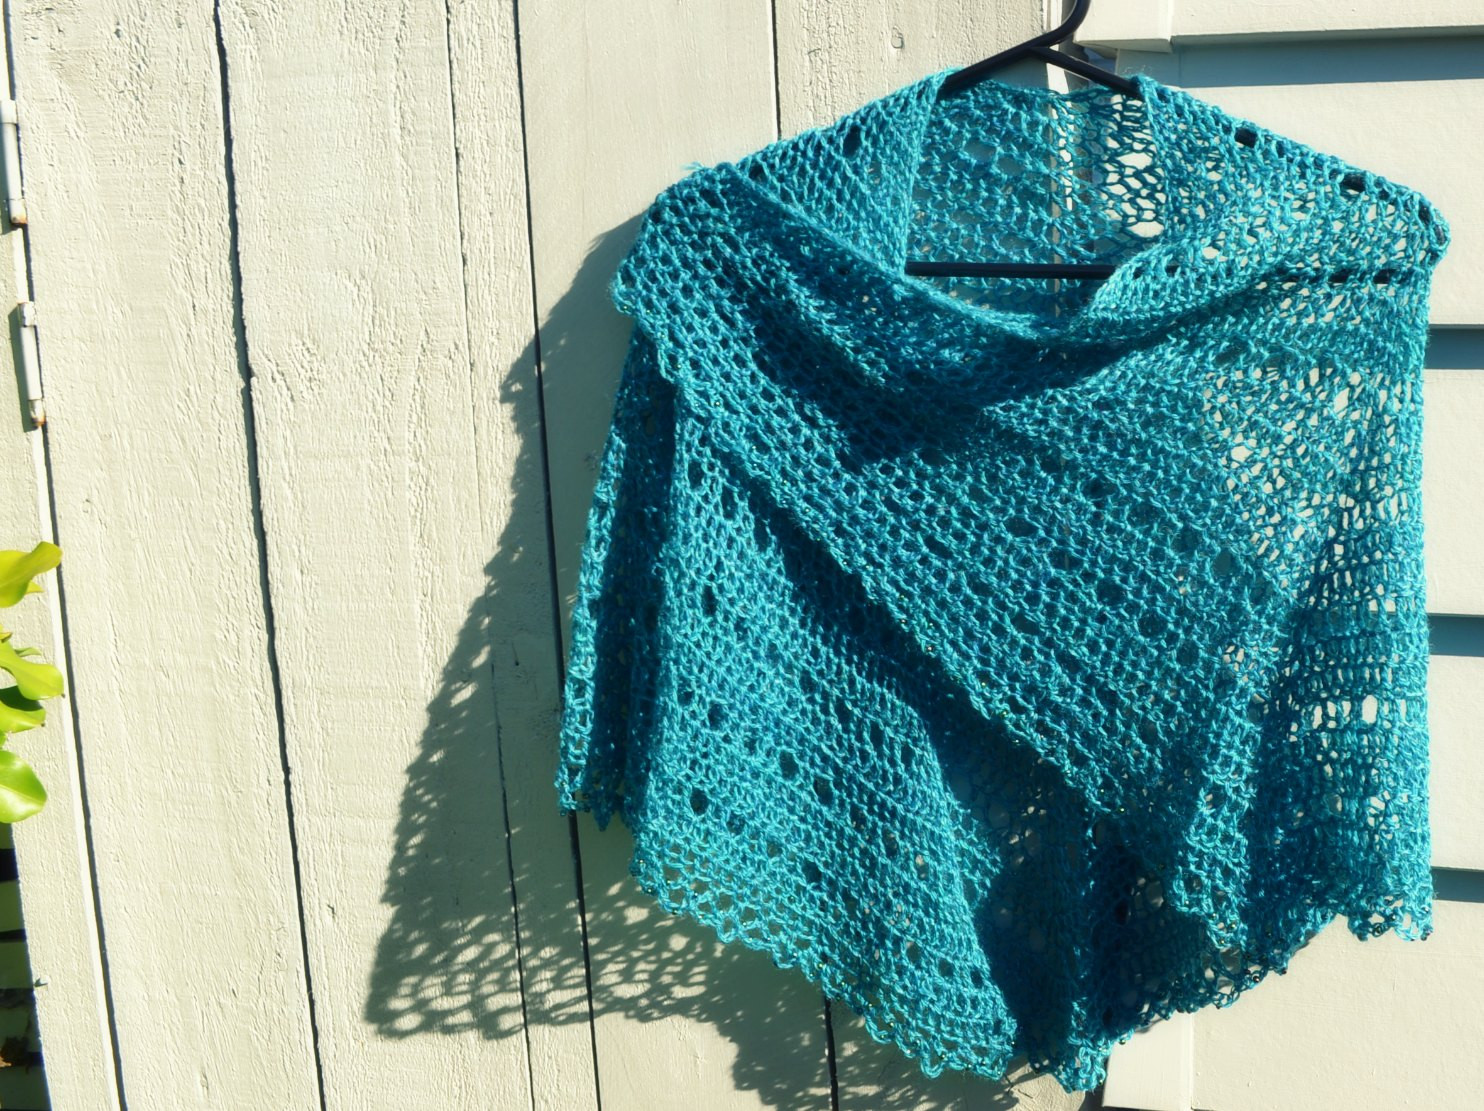 Crochet shawl with bead edge – The Green Dragonfly